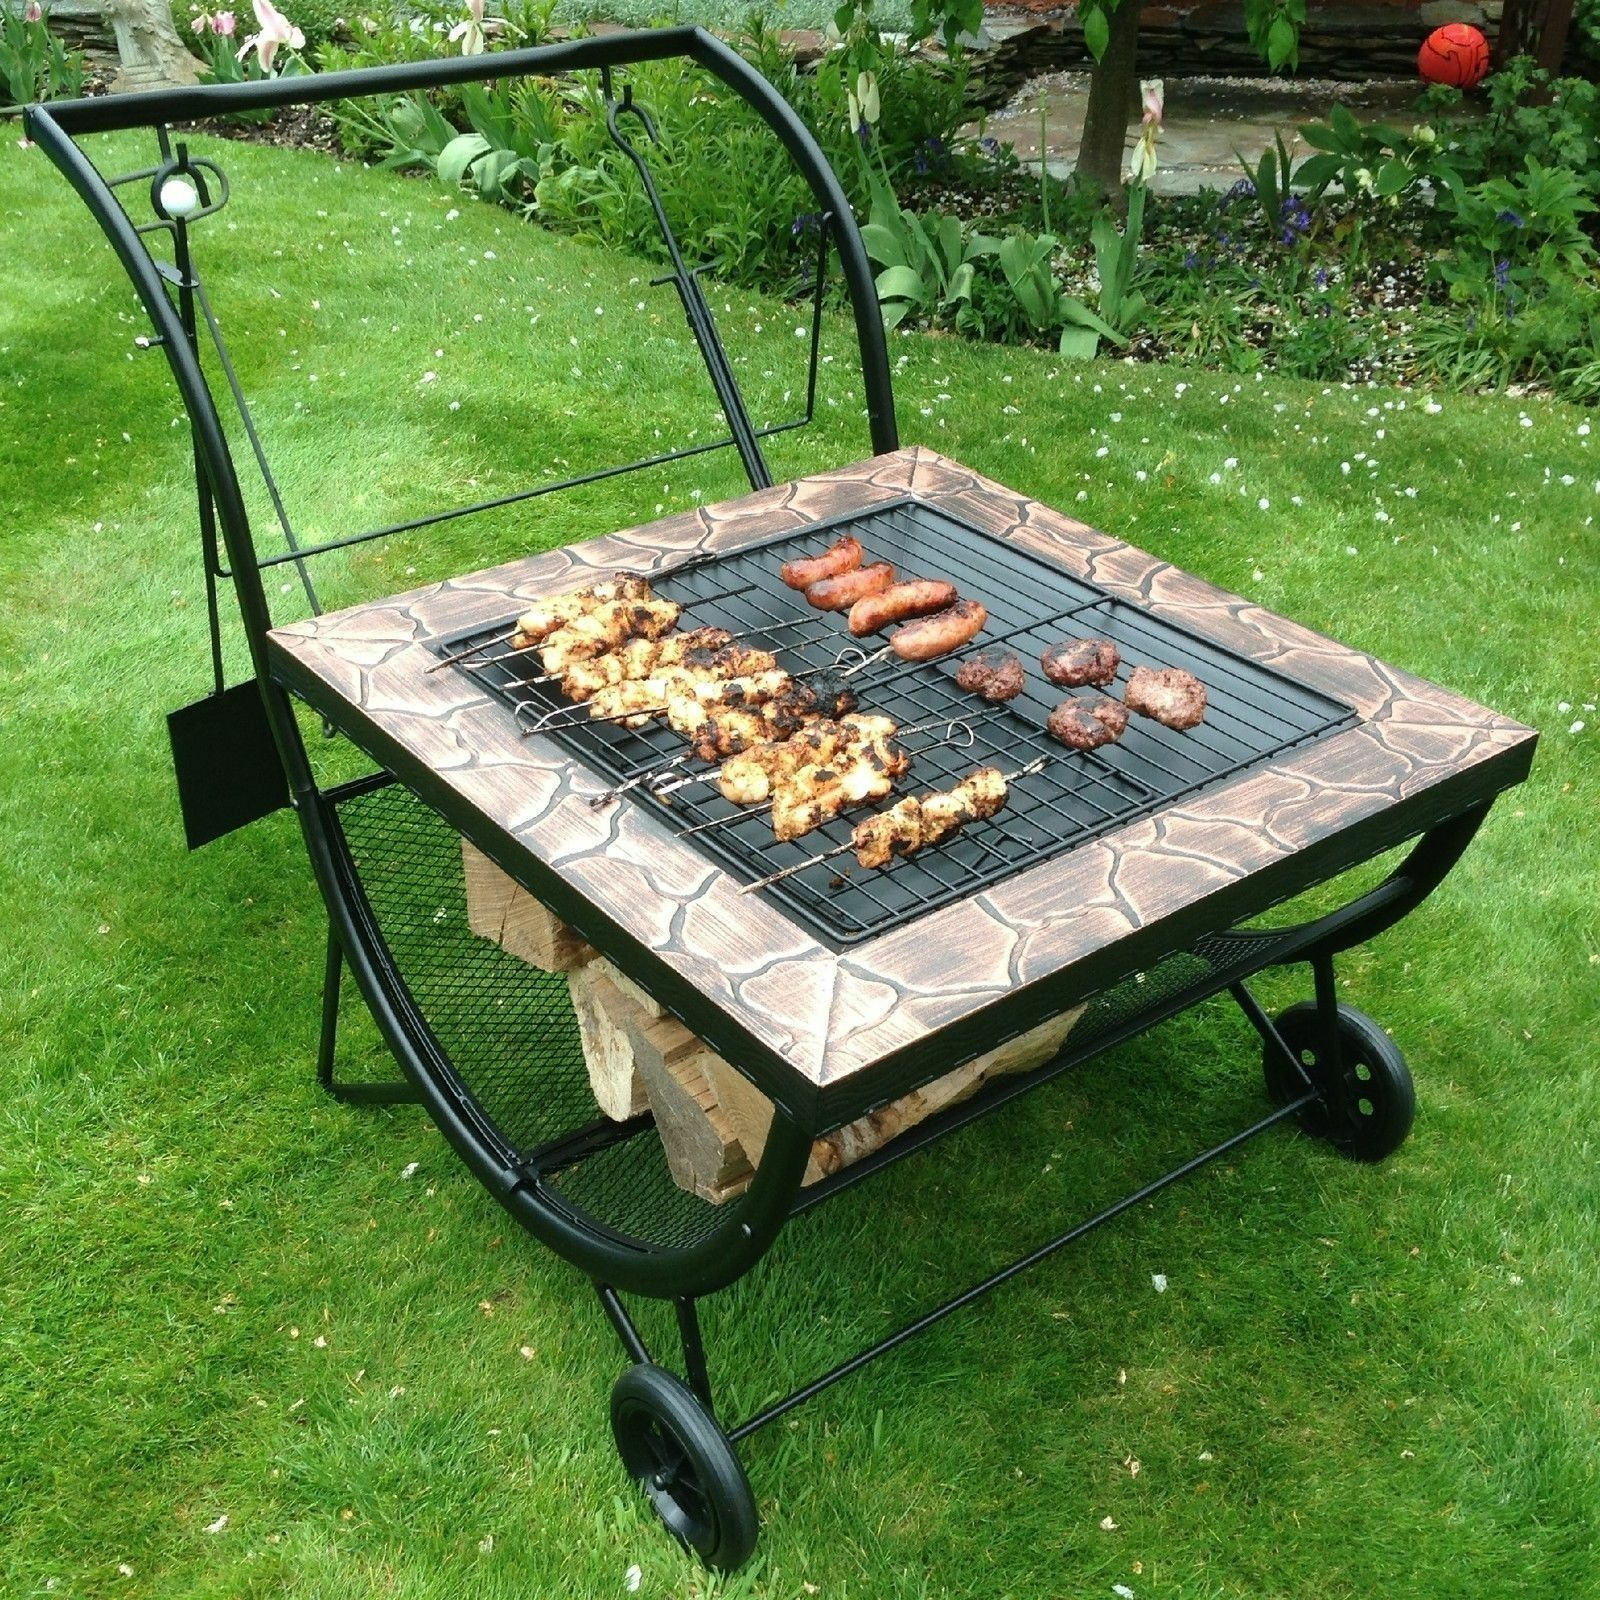 large garden bbq grill rack fire pit patio heater log charcoal brazier barbecue. Black Bedroom Furniture Sets. Home Design Ideas